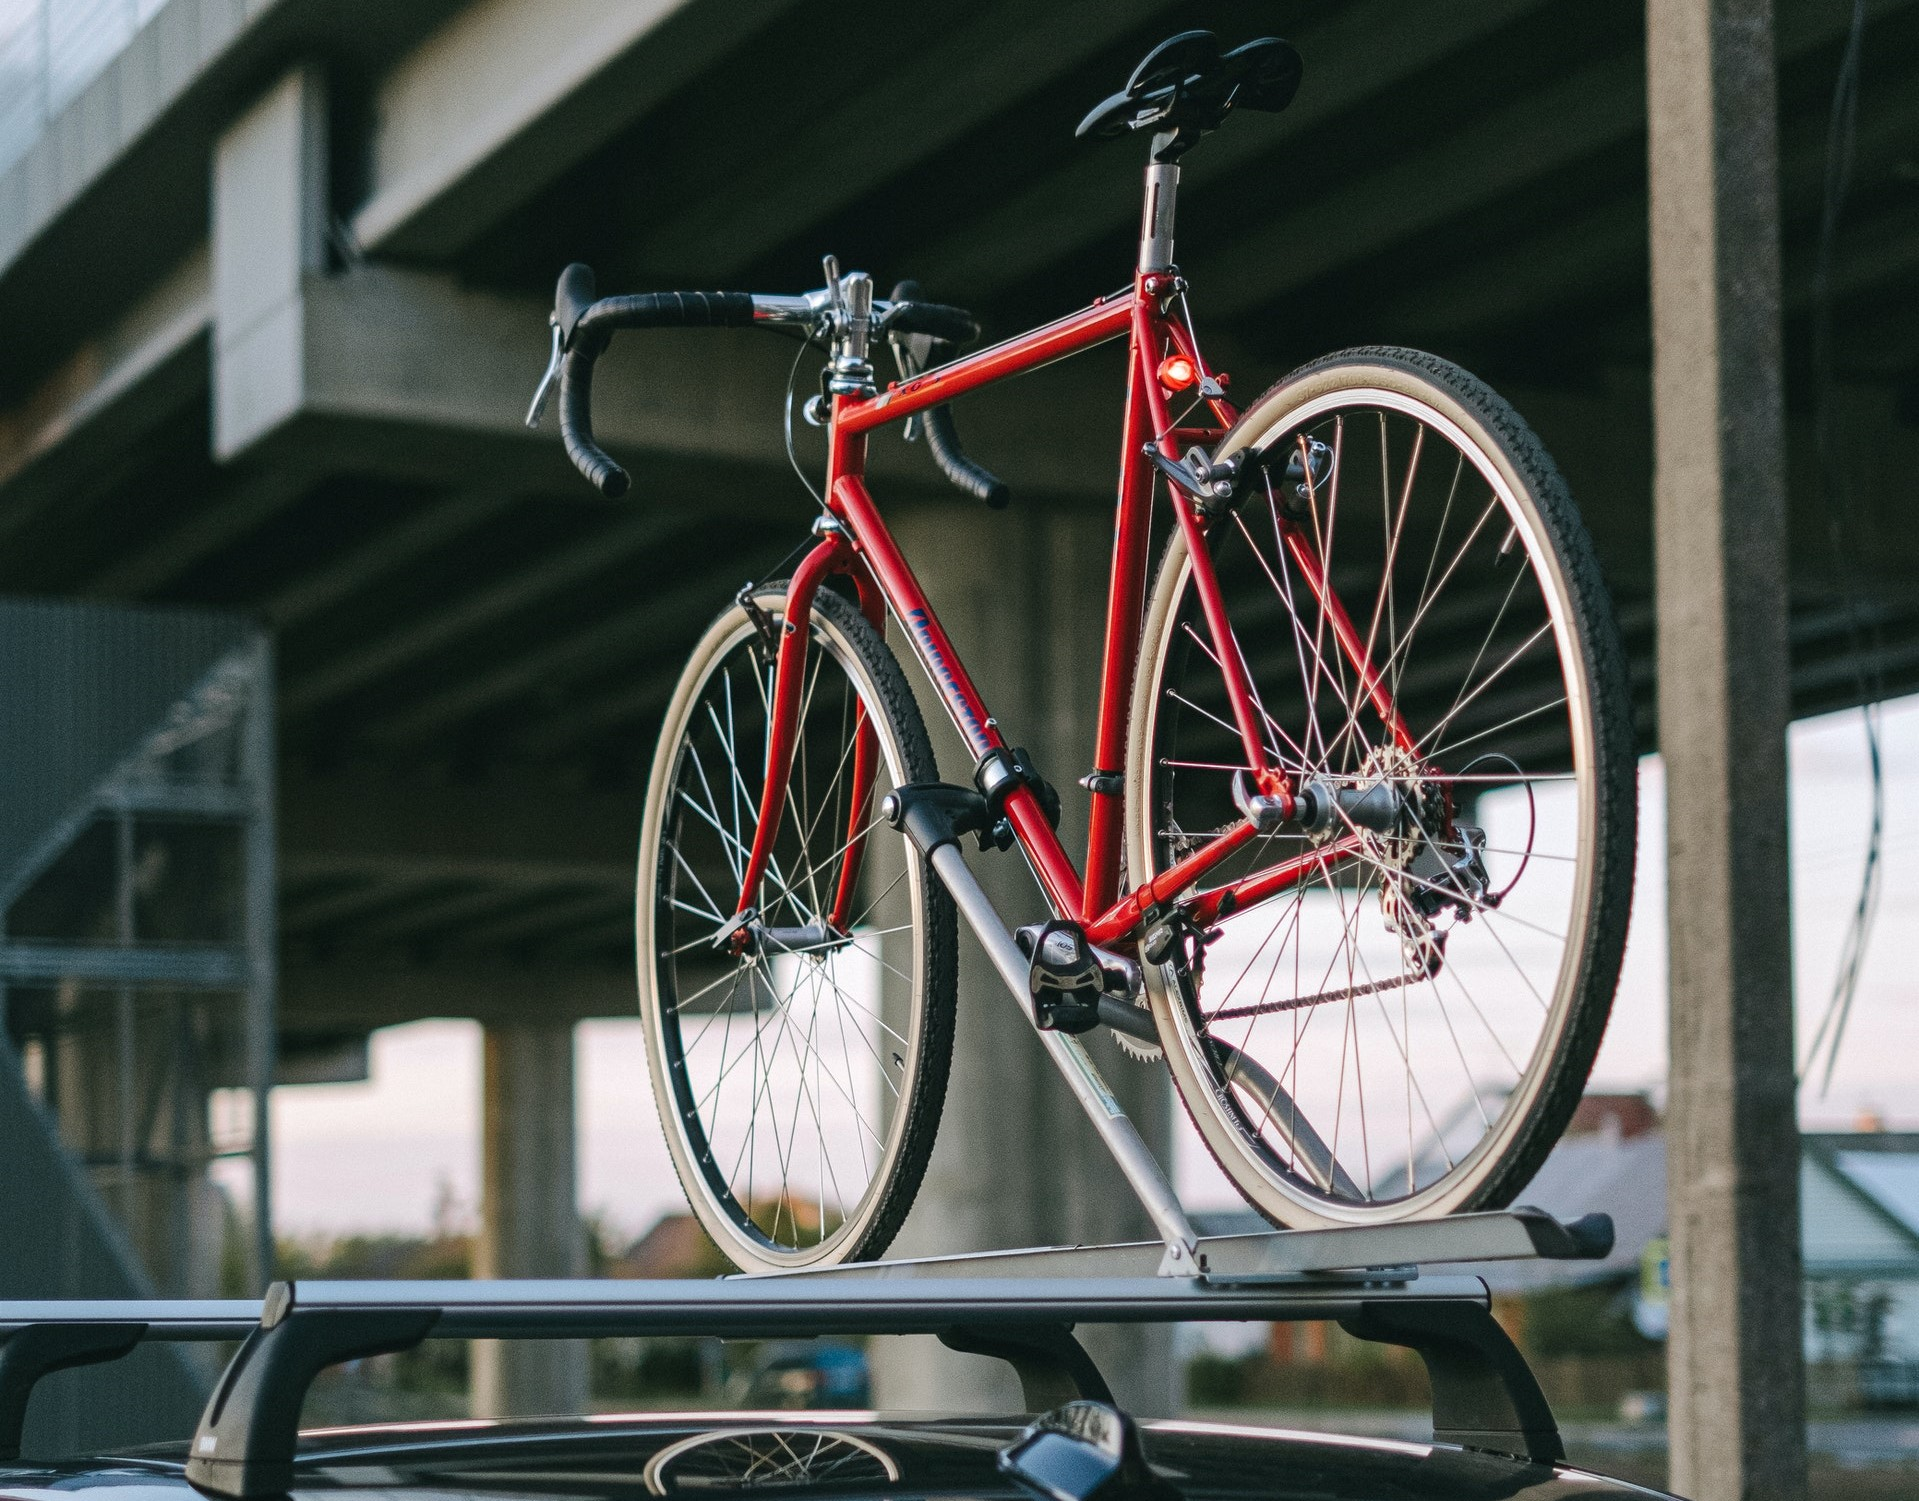 Tips for Transporting Your Bike by Car